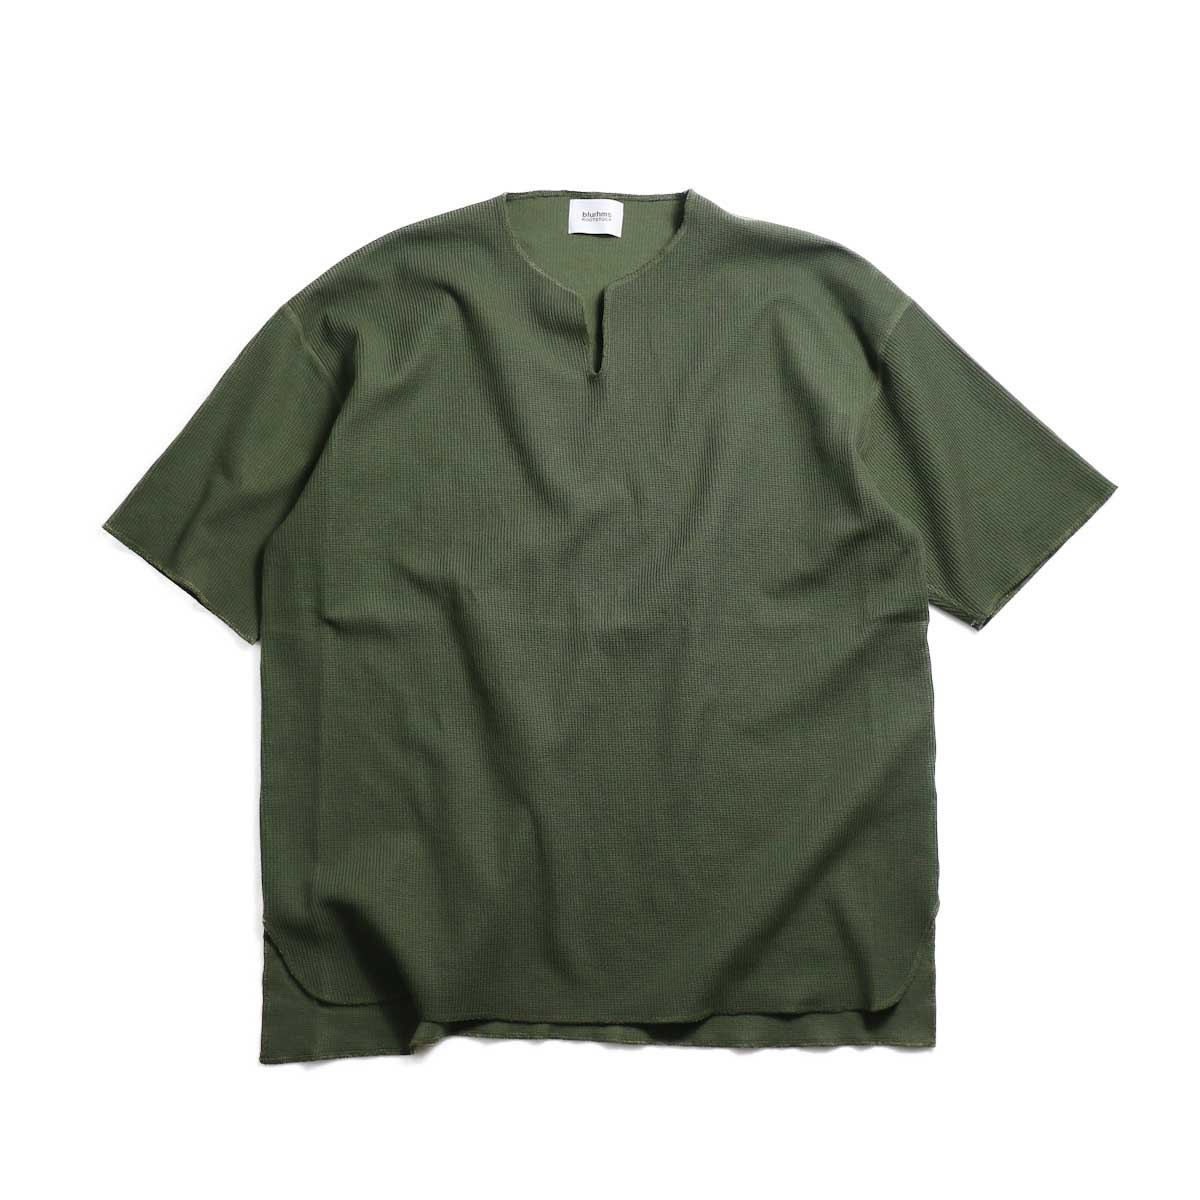 blurhms / New Rough & Smooth Thermal Over-Neck S/S -Olive